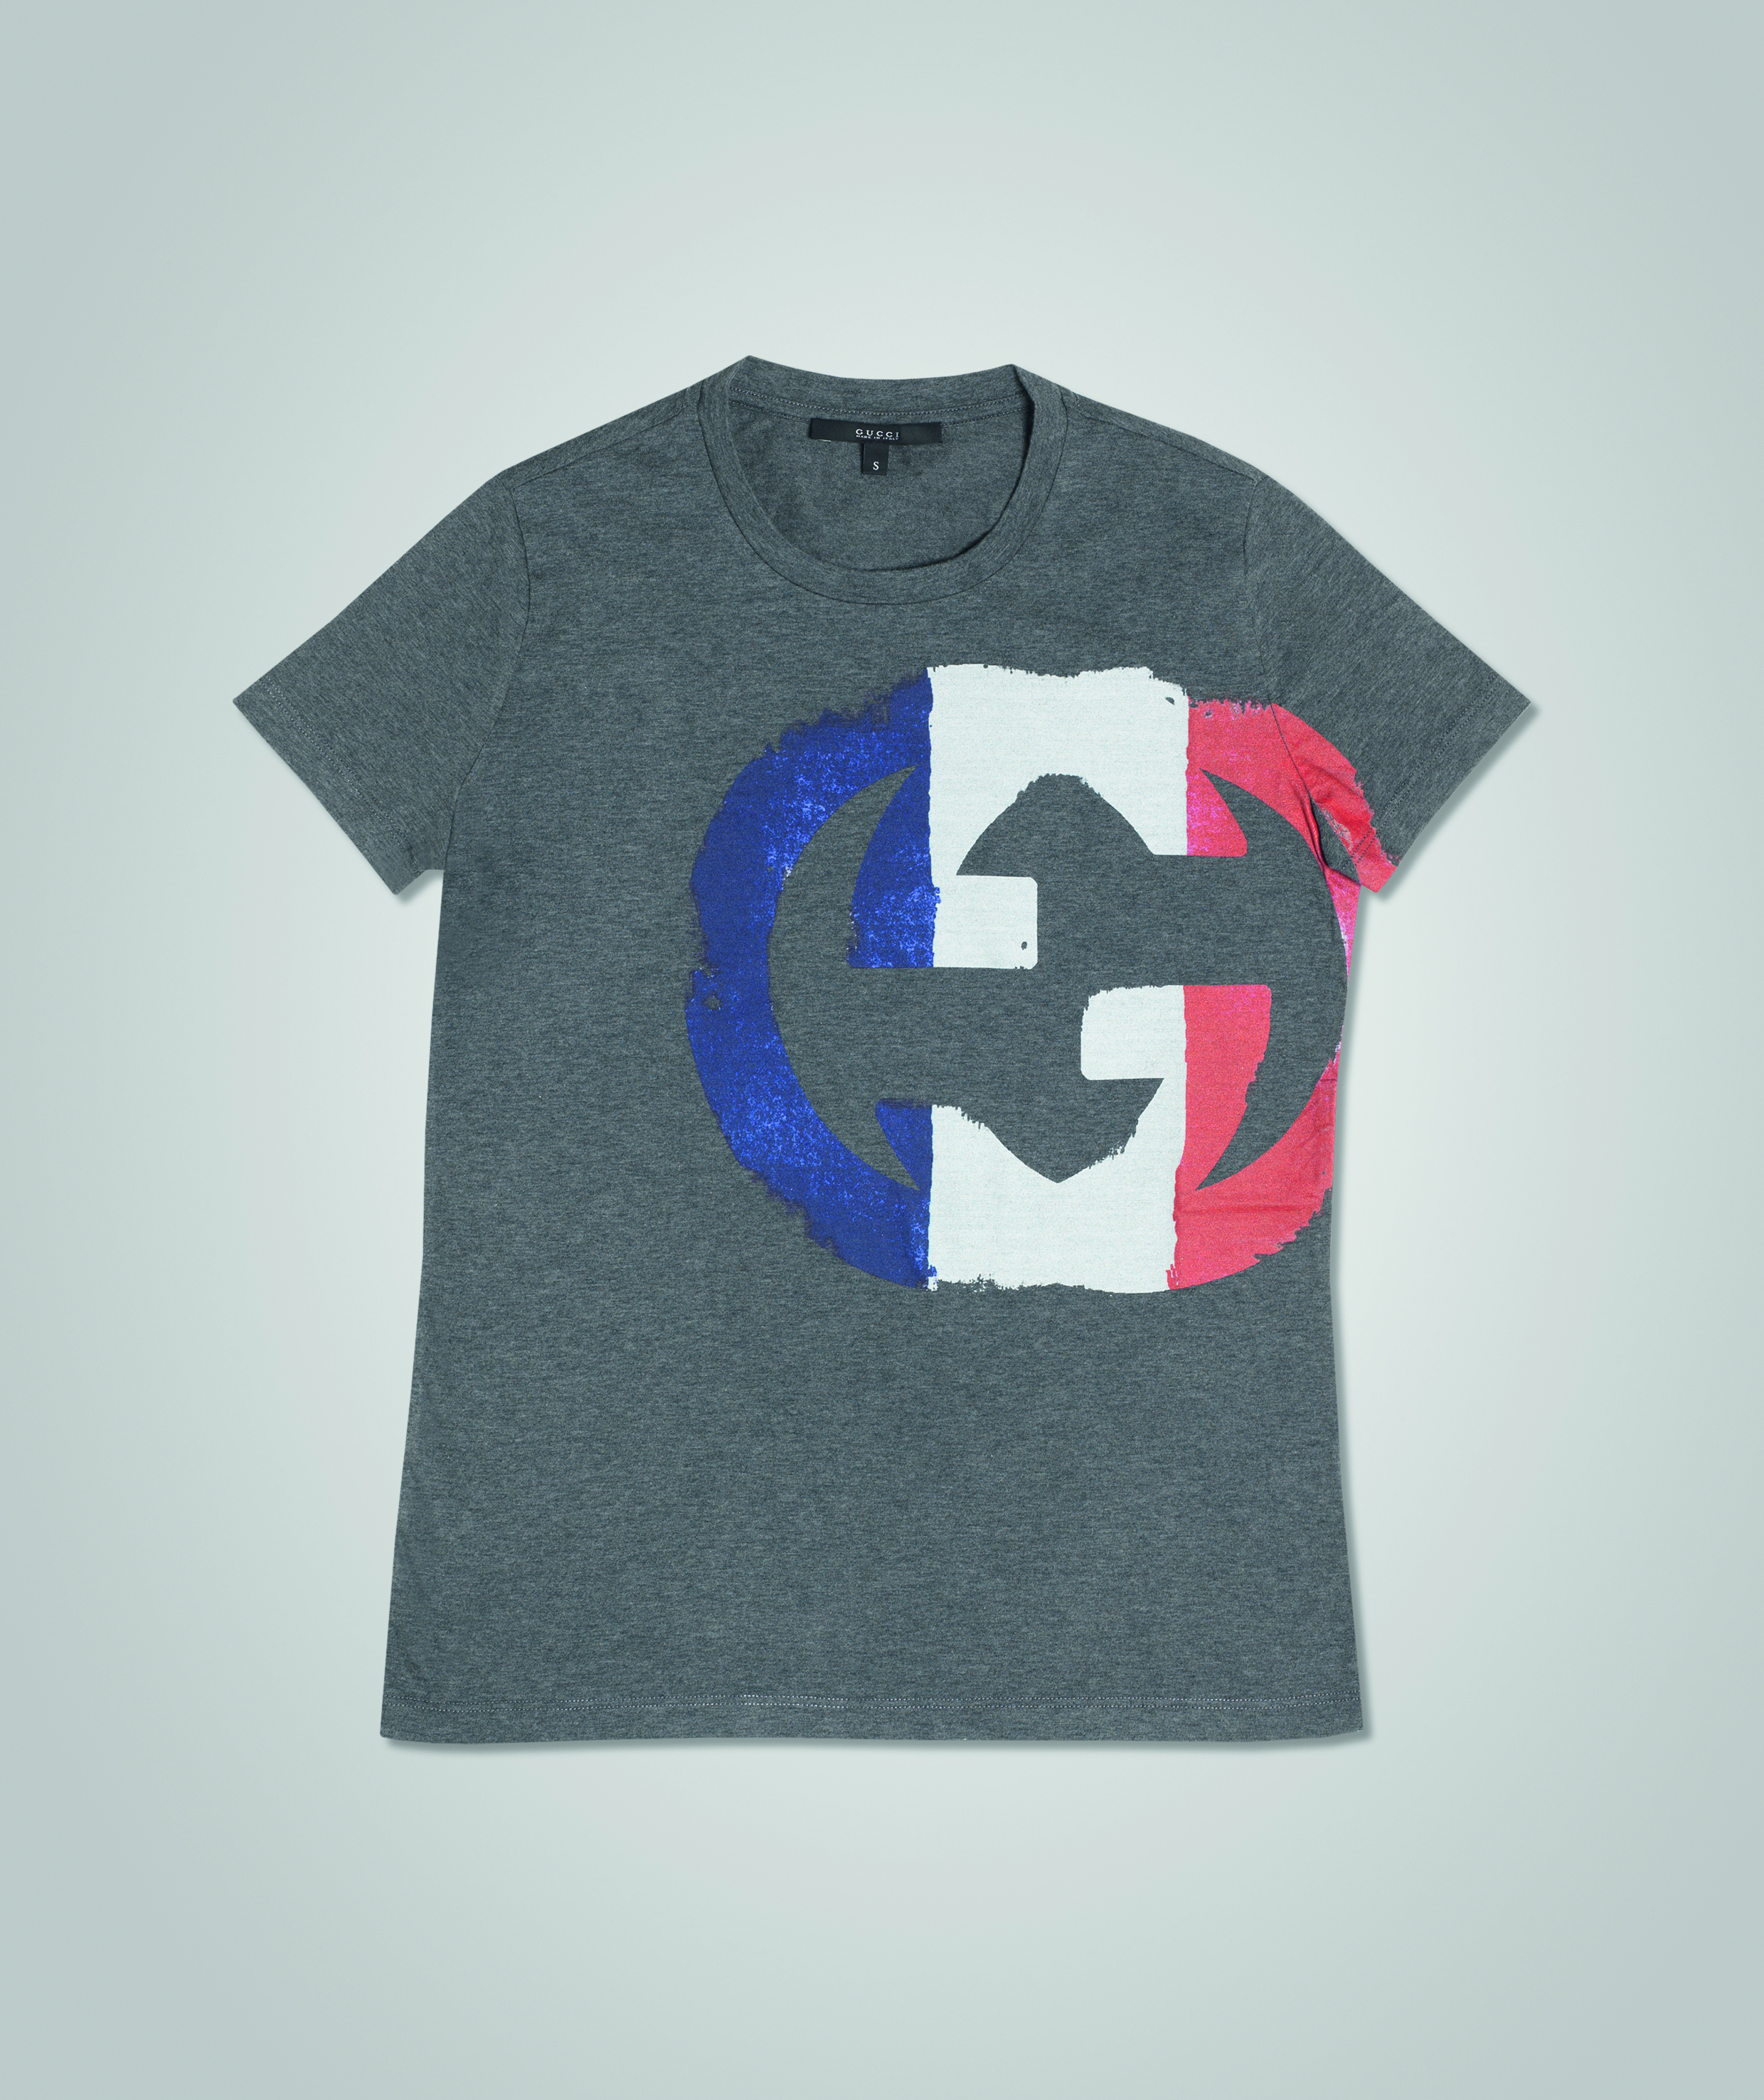 Gucci Women's Tee (France)